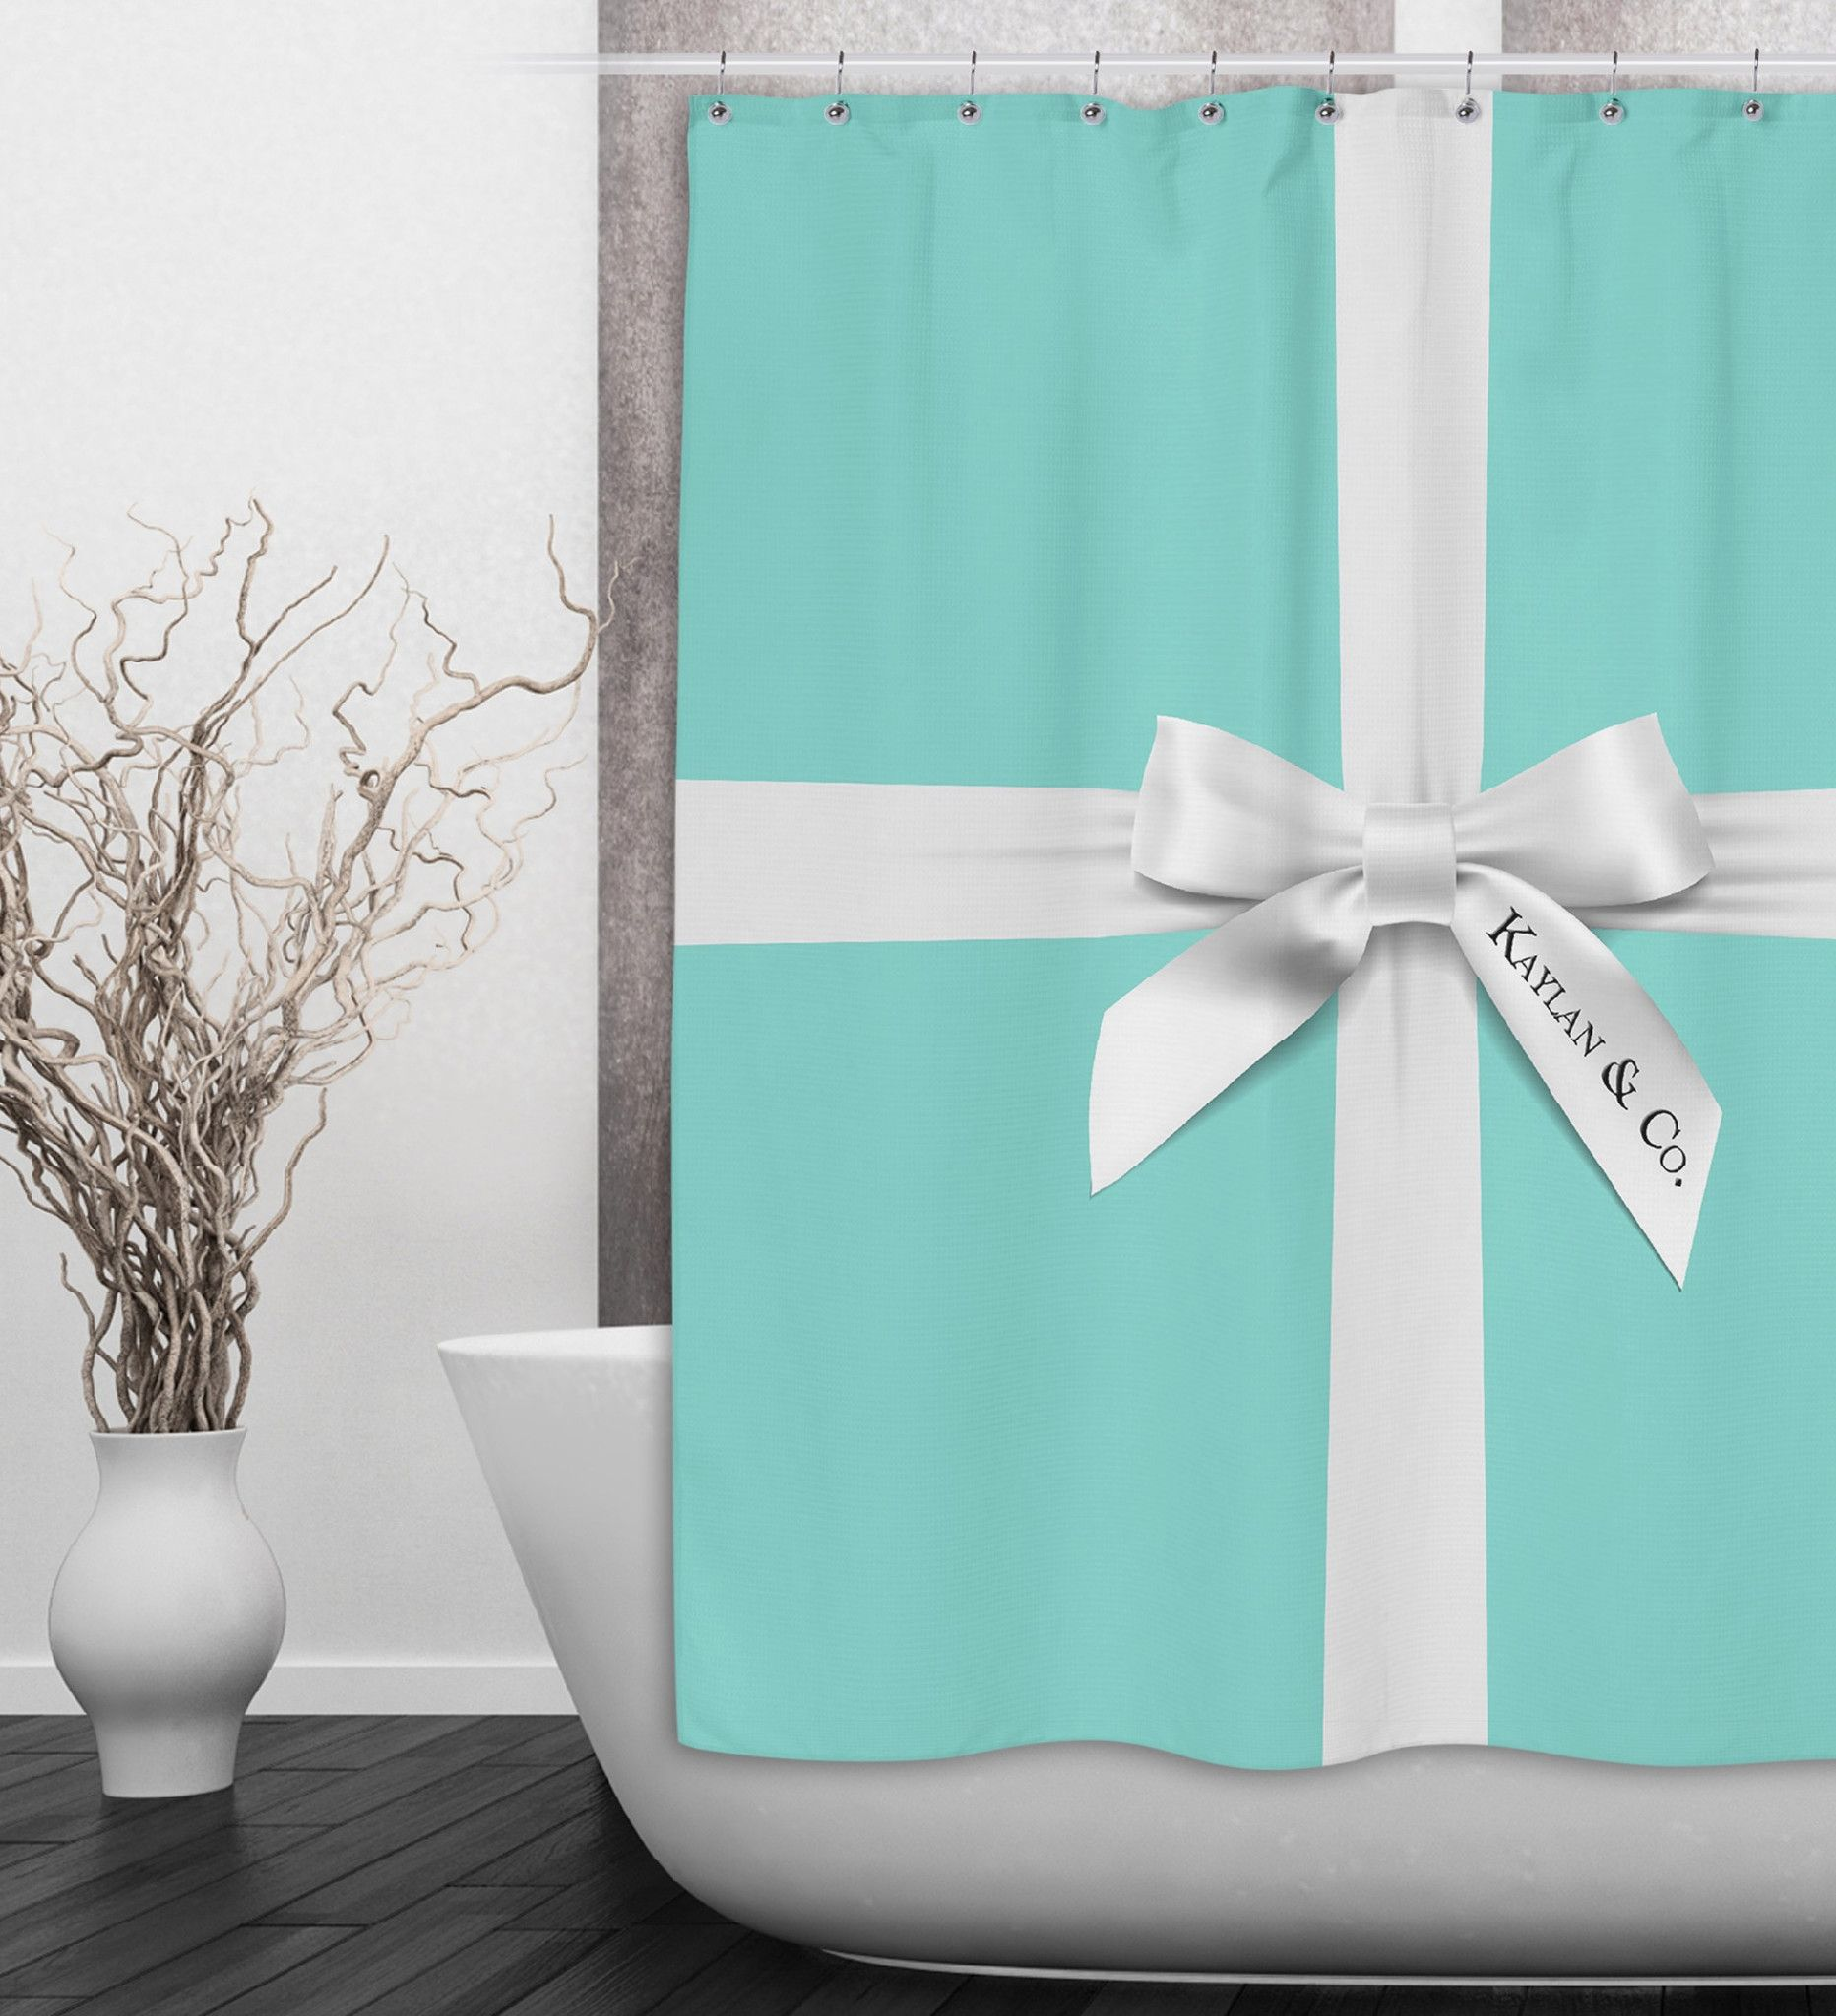 Designer Inspired Robin Egg Blue Name U0026 Co. Shower Curtain, Personalized  With Your Name U0026 Co. Please Leave Name In Message To Seller At Checkout, If